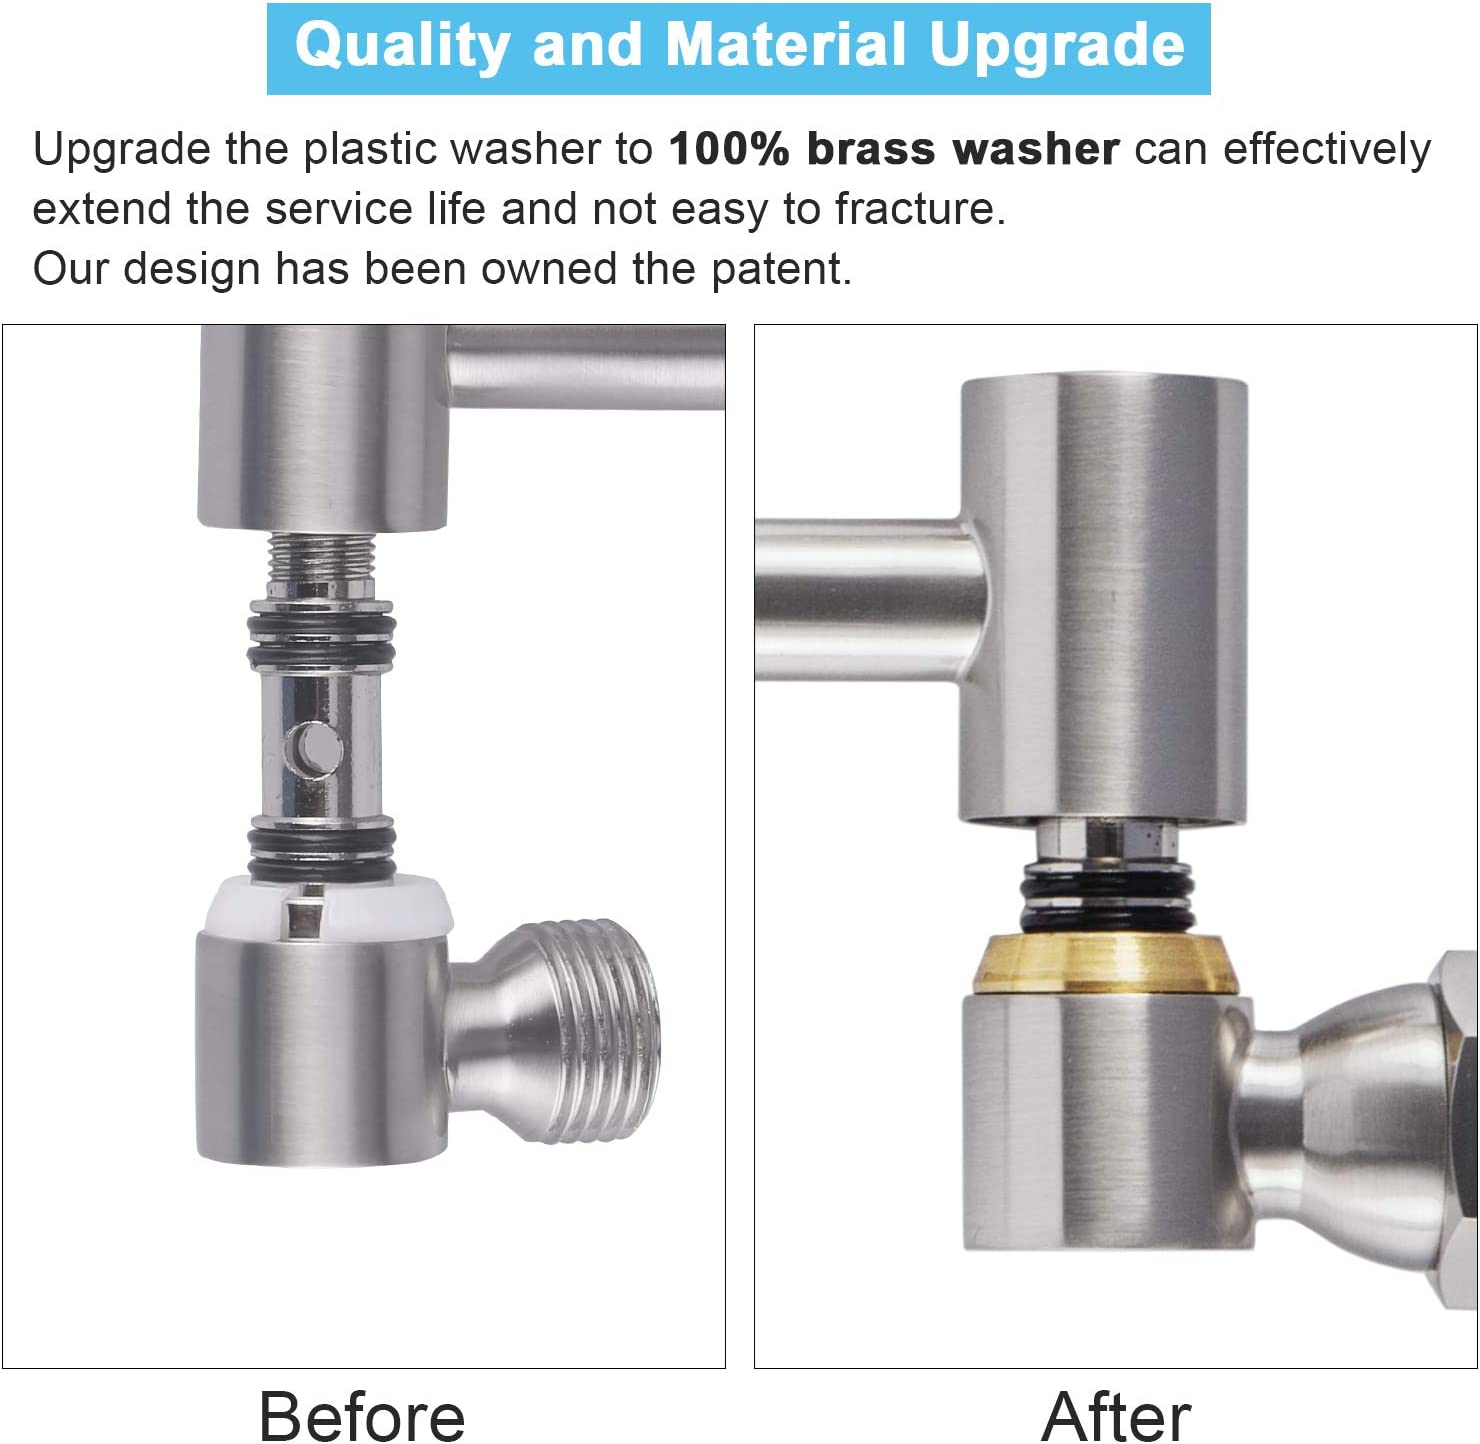 Adjustable Shower Arm Extension 12 Inches Extra Long Brushed Nickel Solid Brass Shower Extender Replacement for Rain Shower Head Adjust Height and Angle Standard G1//2 Thread